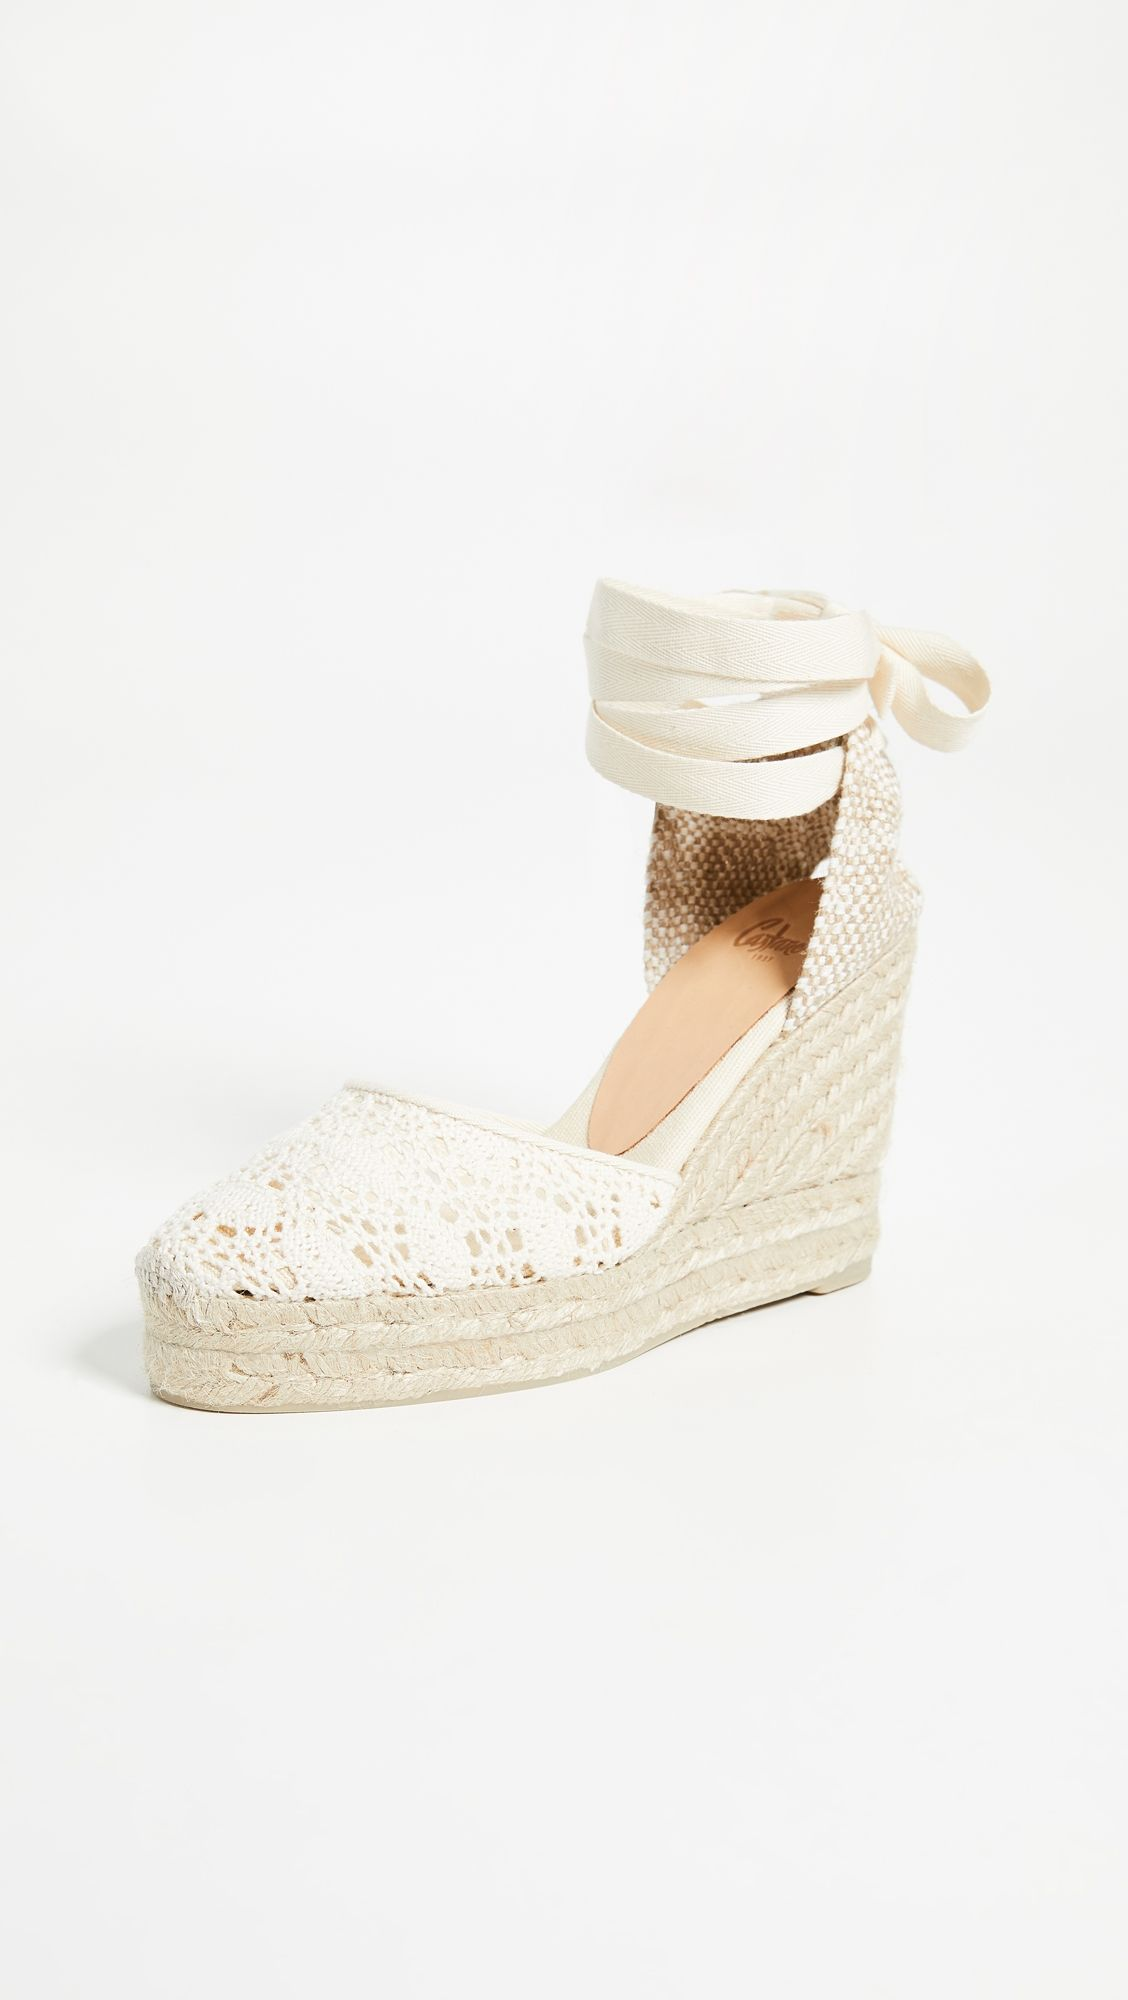 Carina Eyelet Wedges In 2020 Bridal Sandals Wedges Wedding Wedges